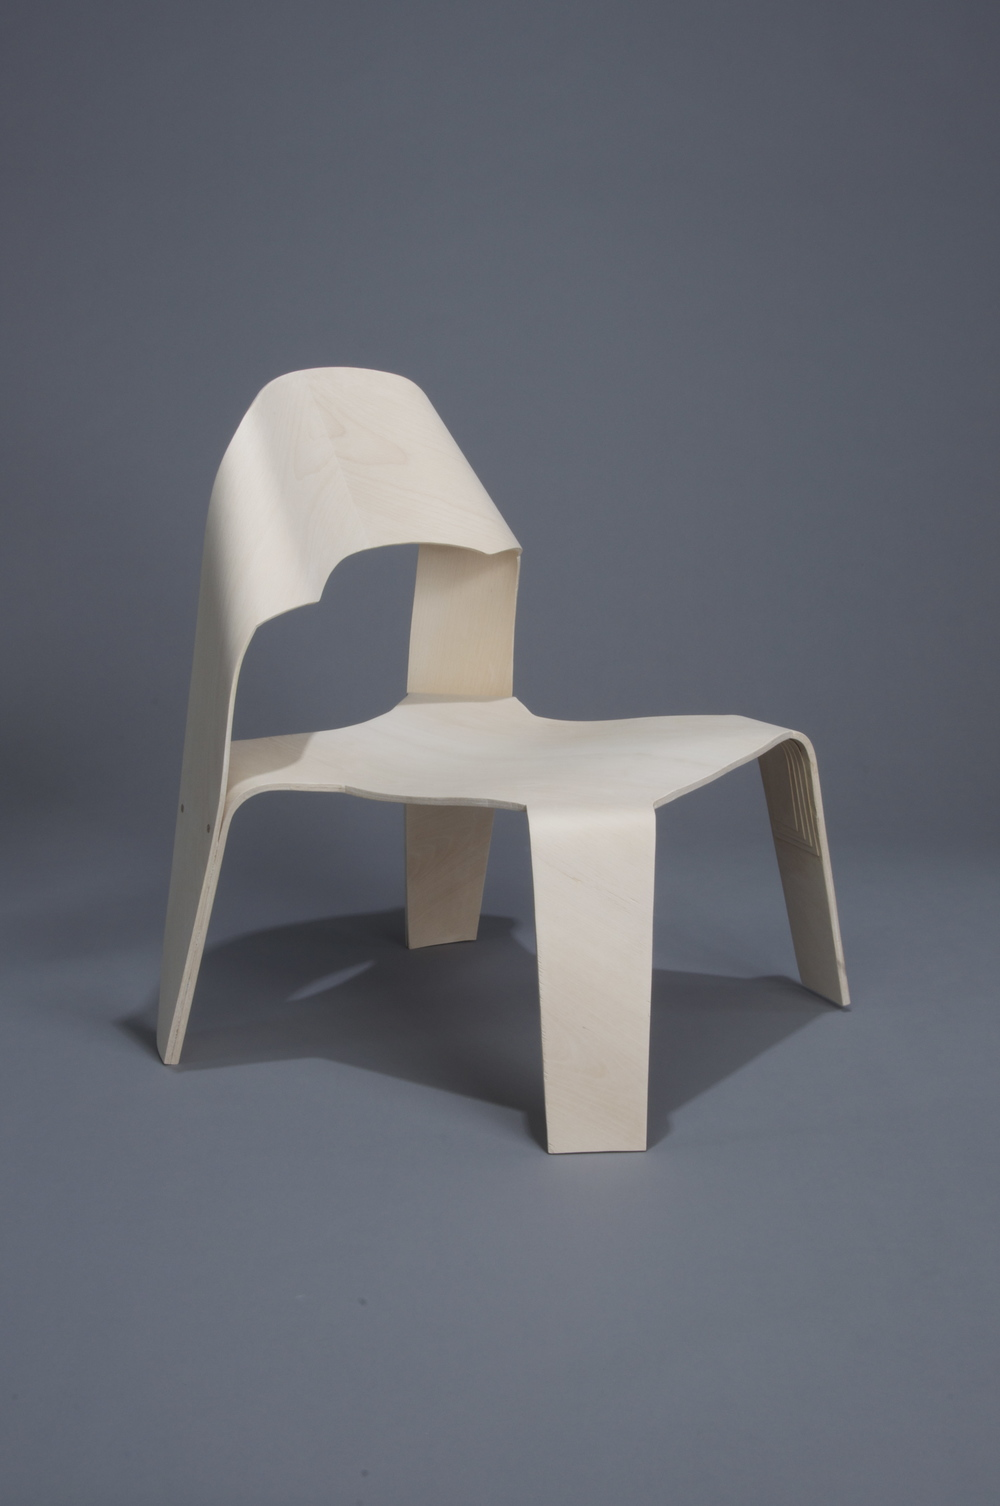 The Copenhagen Lounger was made during a two-month study abroad in Copenhagen, Denmark. The lounger was designed after a weeklong study tour of Finland and Sweden and the study of the history of Danish functionalism. The entire chair is made of beech veneer formed using a vacuum-bagging technique to mold both the chair and backrest components, which were later, joined with a walnut dowel.  2011.